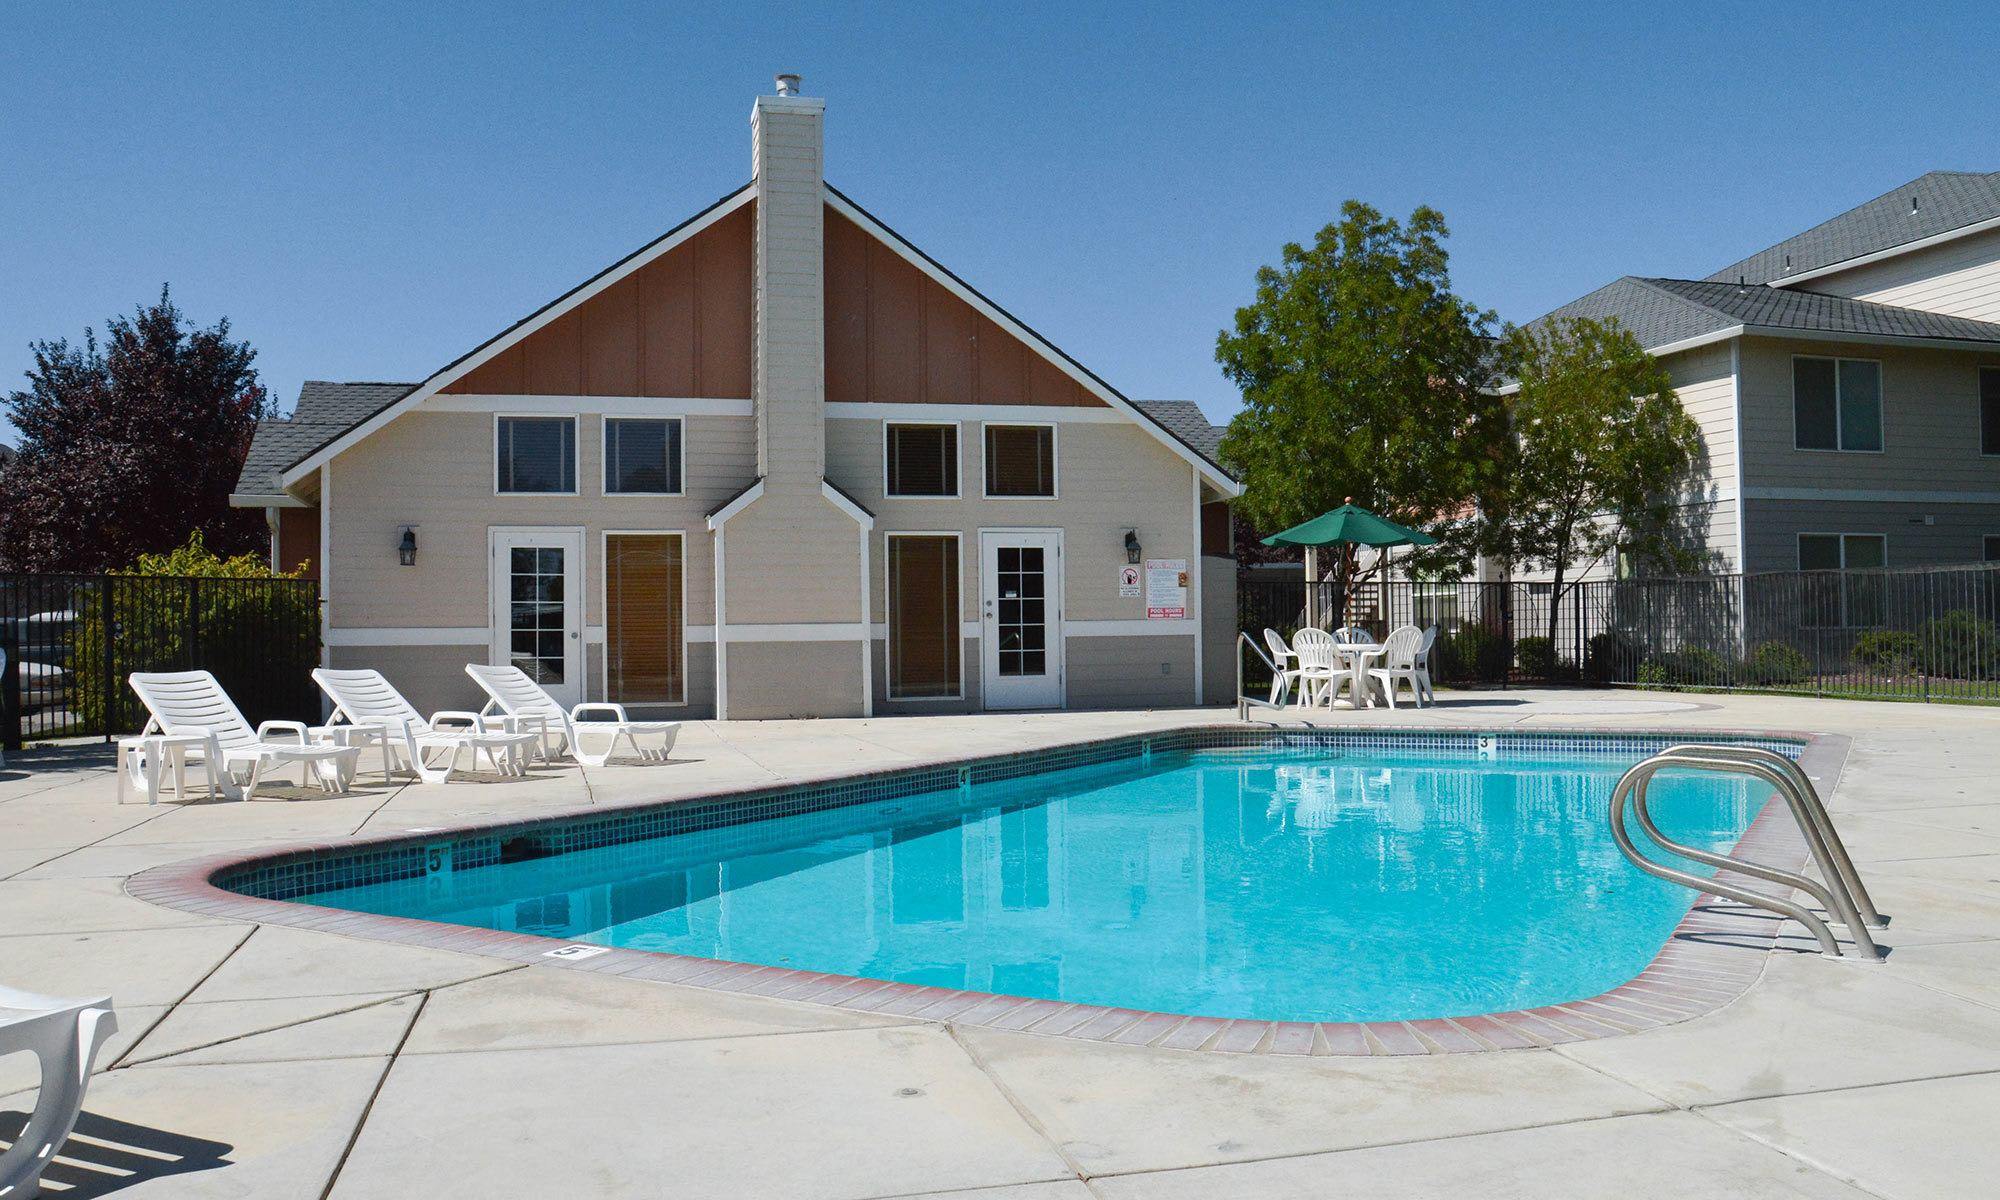 Learn more about our apartment community at Sterling Ridge in Hermiston; schedule your personal tour today.